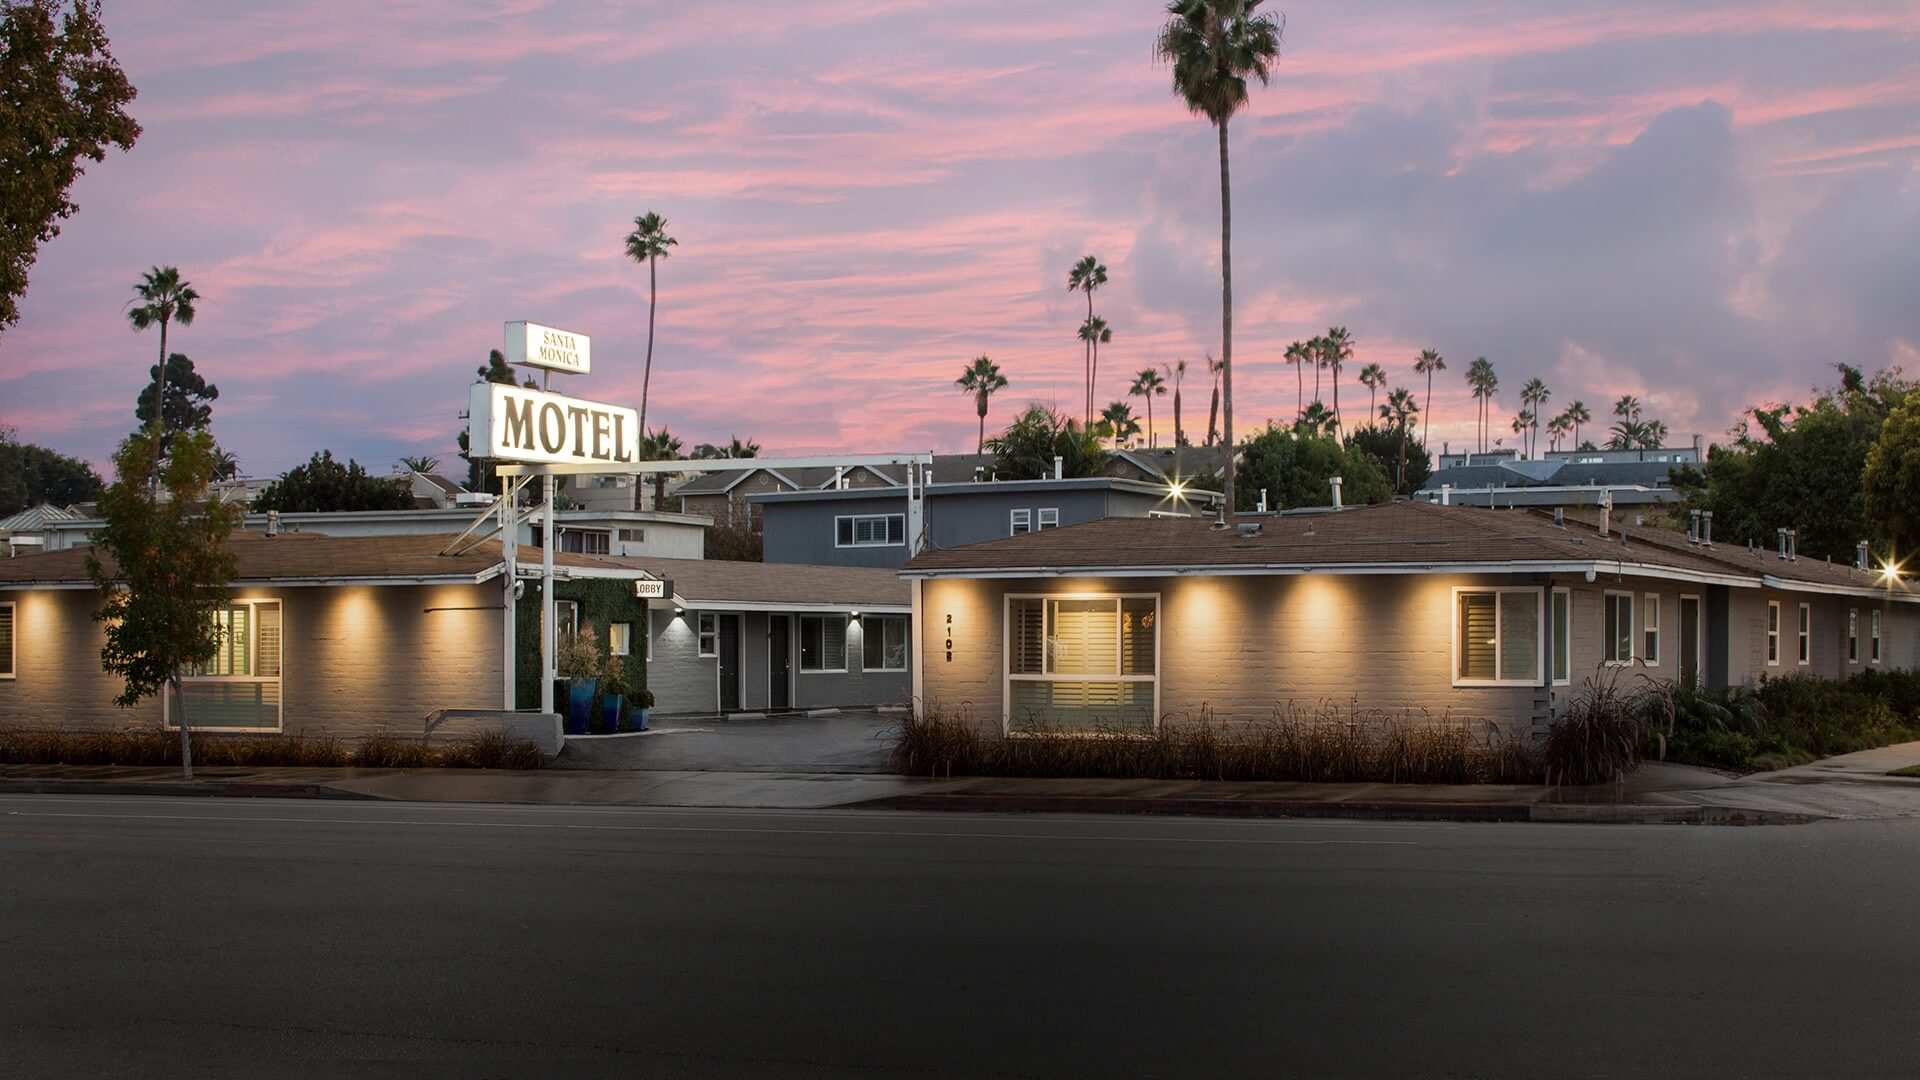 motel exterior with pink sky at sunset